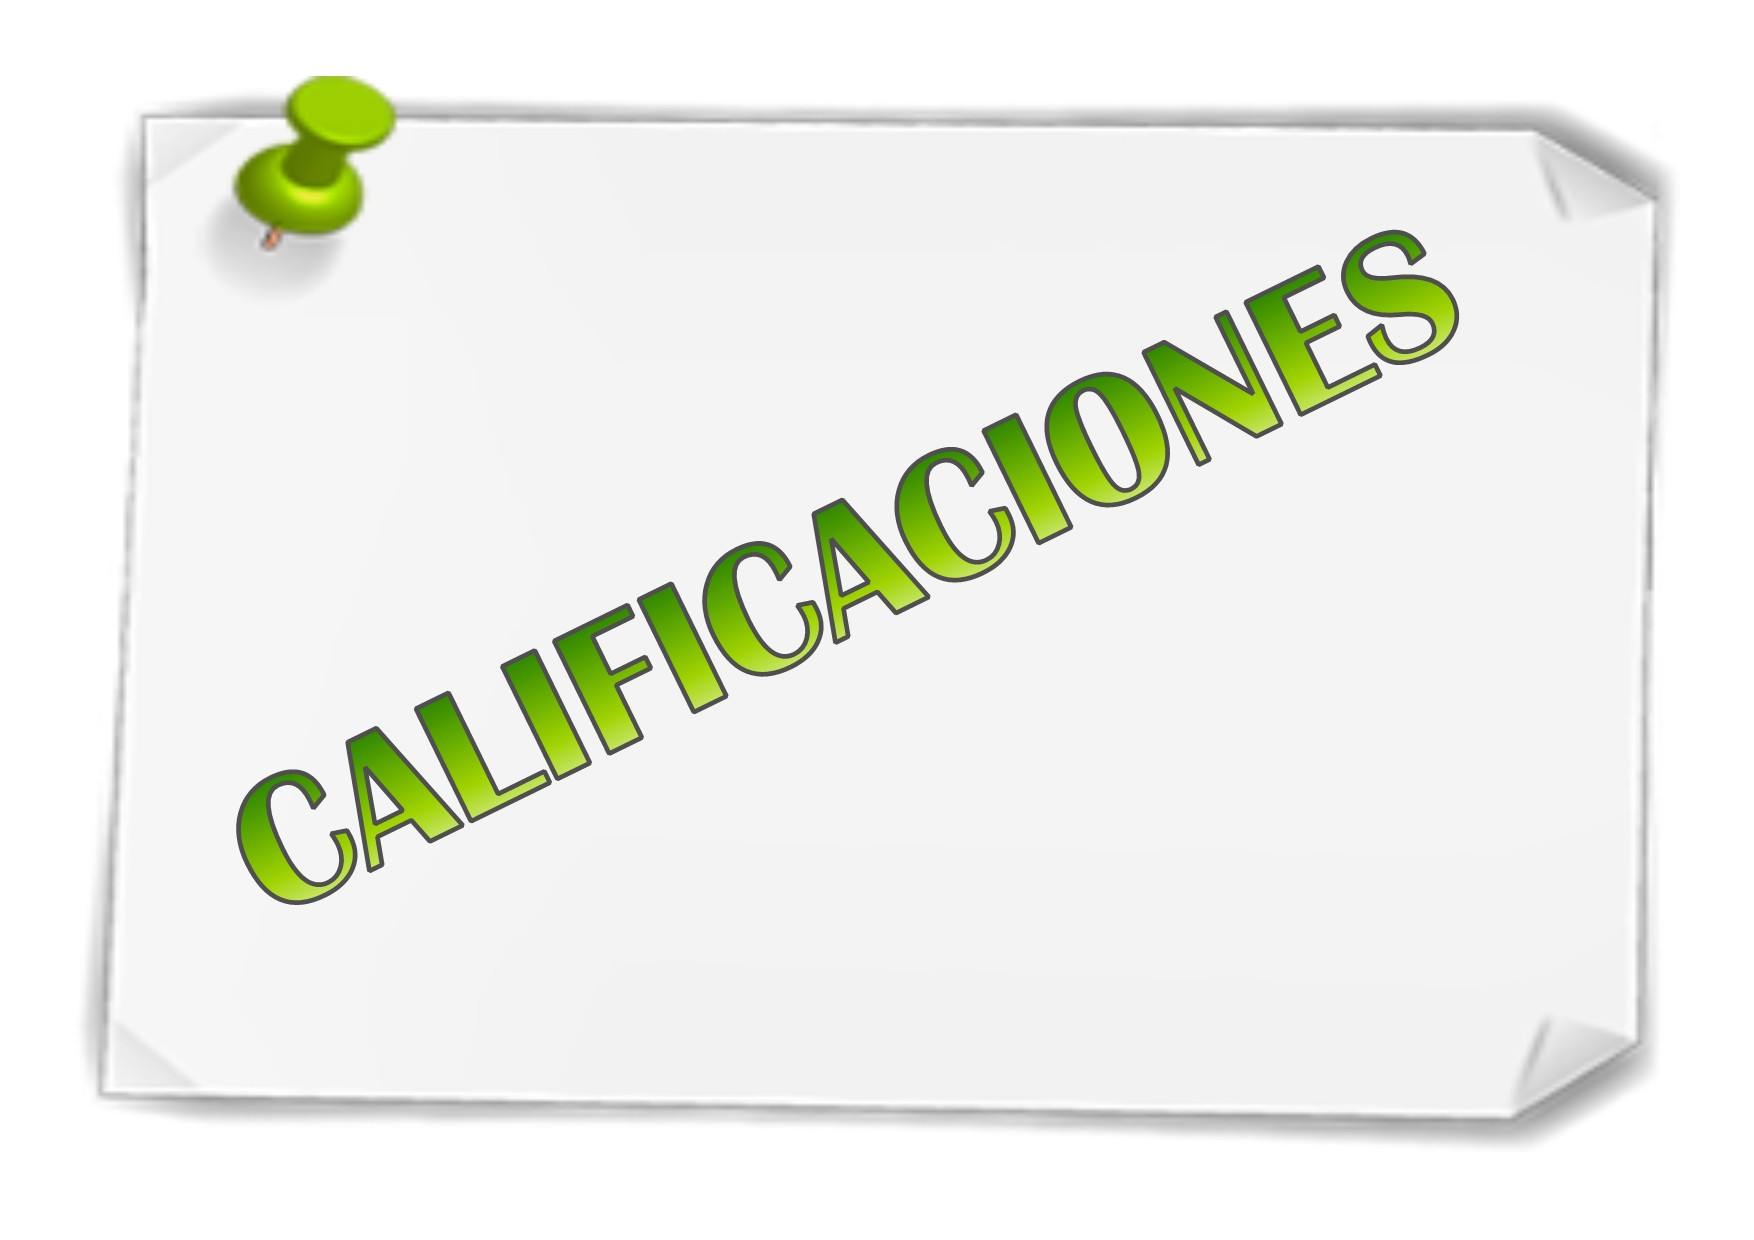 CALIFICACIONES 2016